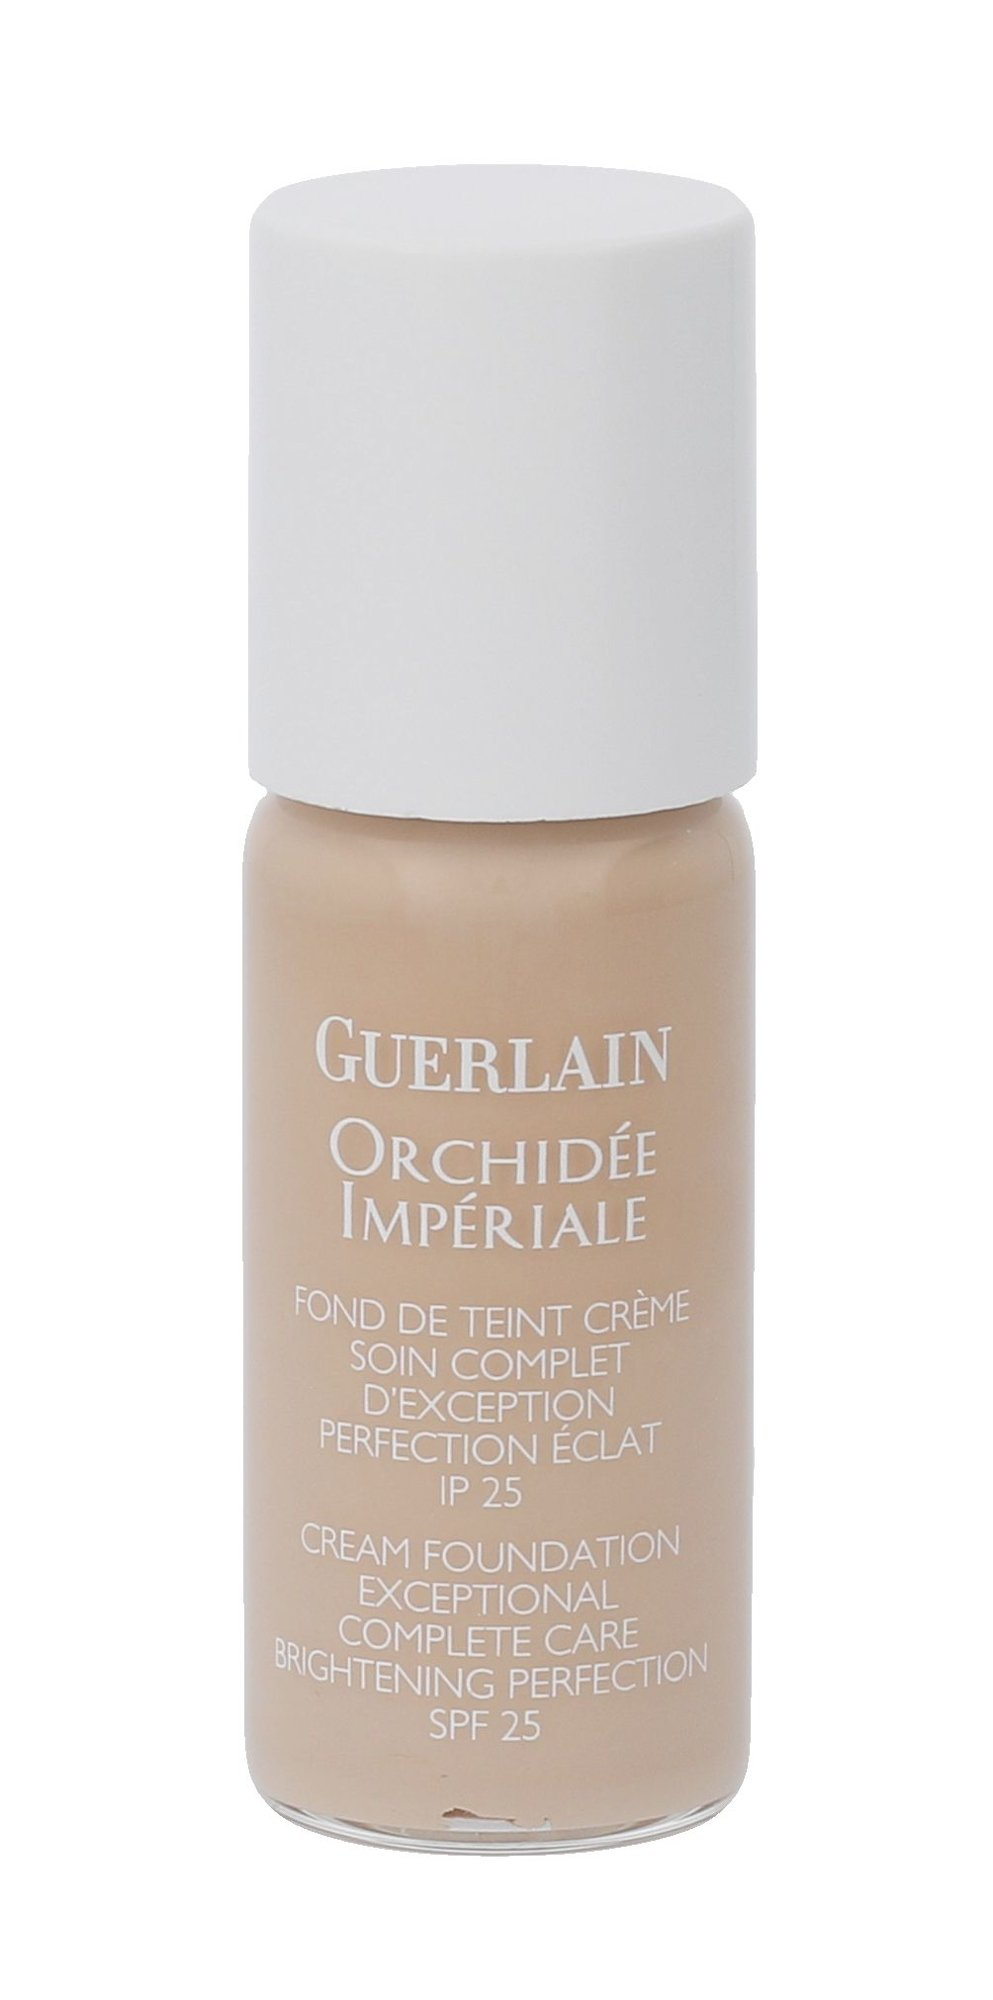 Guerlain Orchidée Impériale Cosmetic 10ml 01 Beige Pale Cream Foundation SPF25